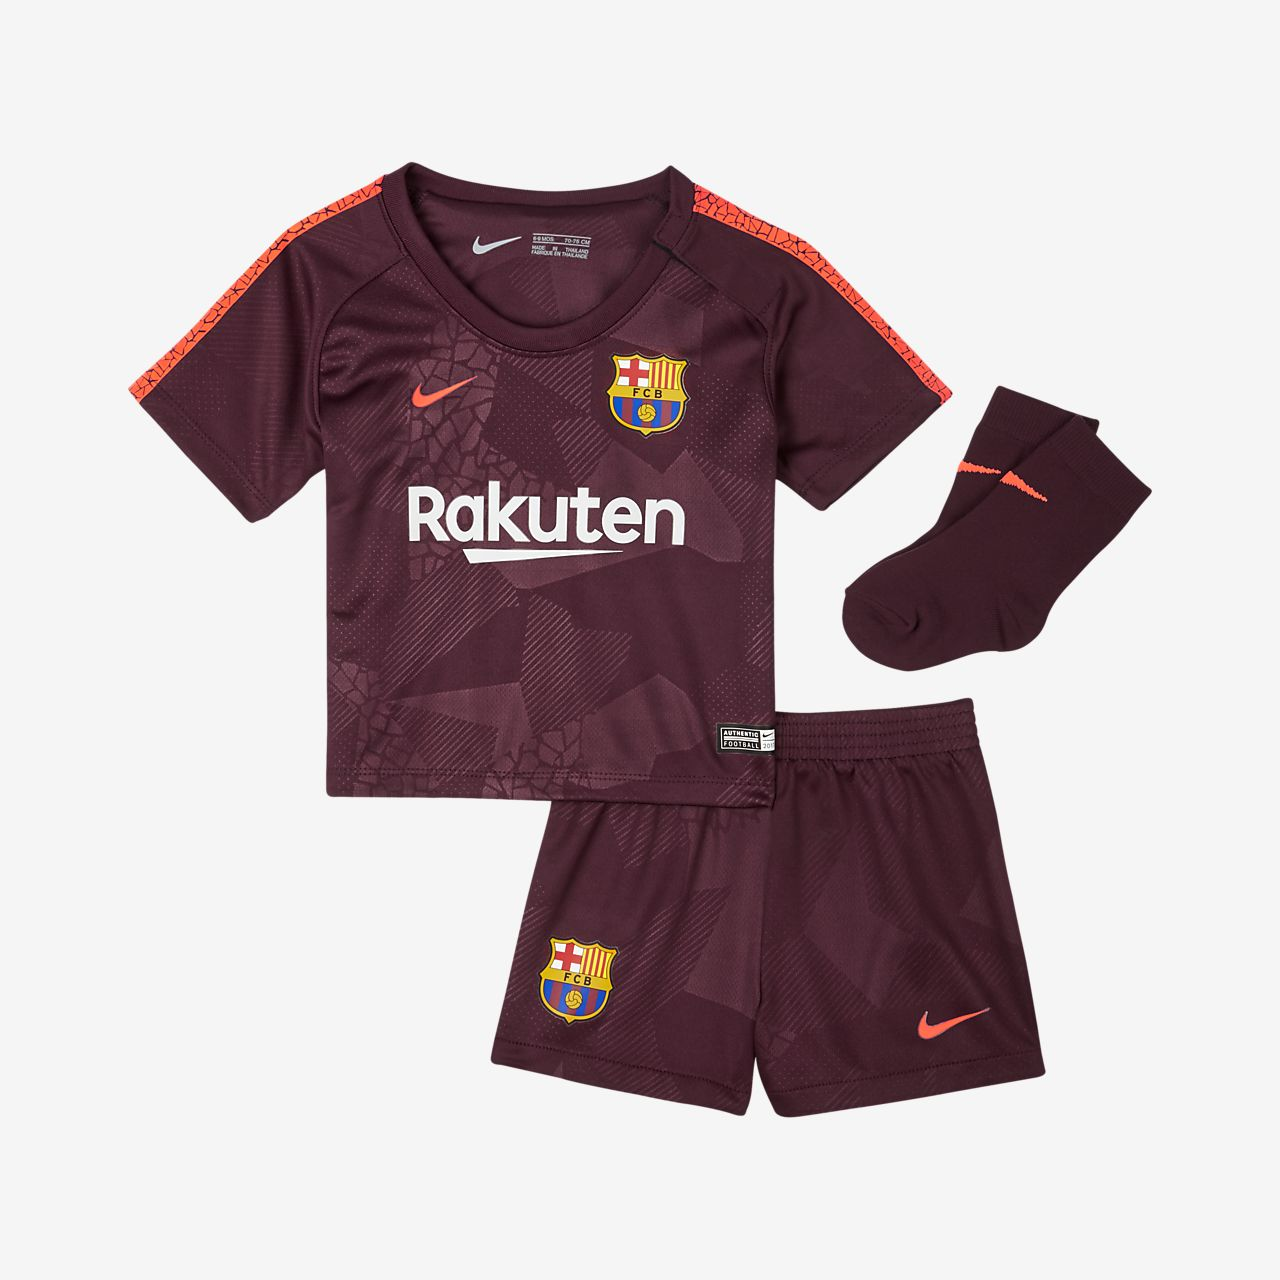 e085877c5 İndir (700x700) · 2017 18 FC Barcelona Stadium Third Baby   Toddler  Football Kit. Nike.com